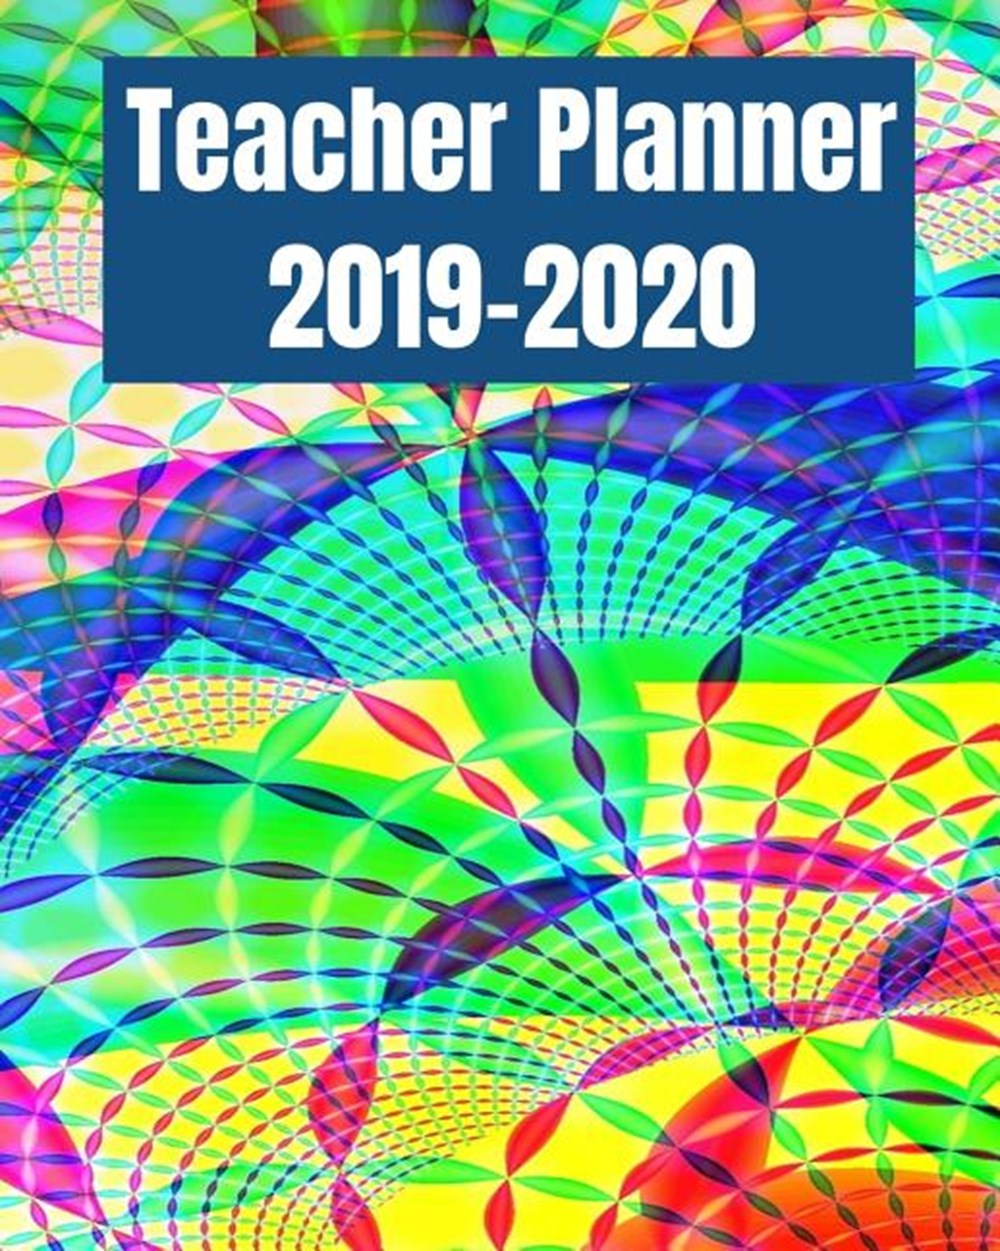 Teacher Planner 2019-2020 Academic Planners Calendar Daily, Weekly and Monthly July 2019- June 2020